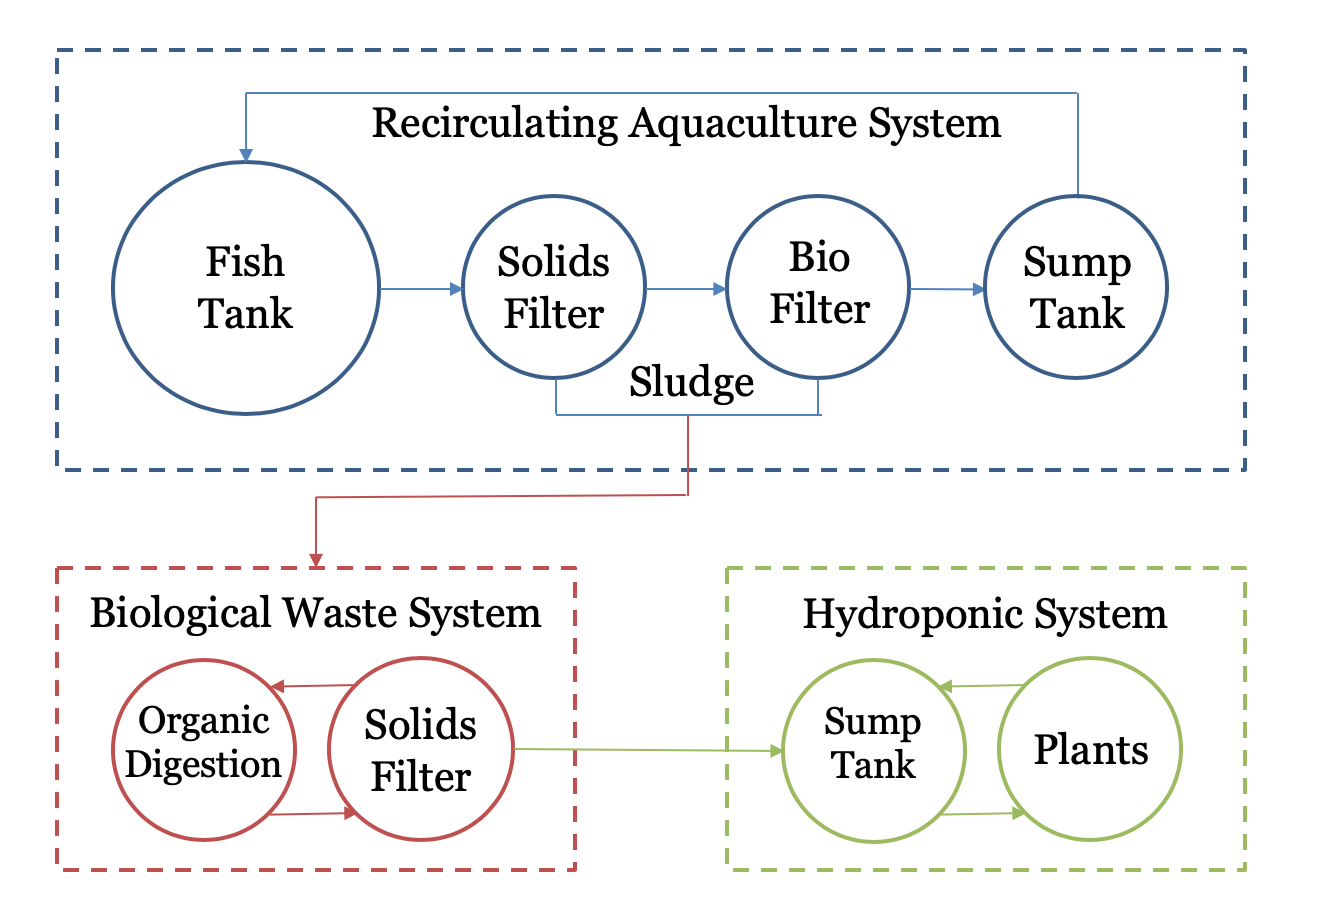 medium resolution of a simple decoupled system a small decoupled system can be very easy to build and operate if an ast bead filter is used the fish loop is reduced to two